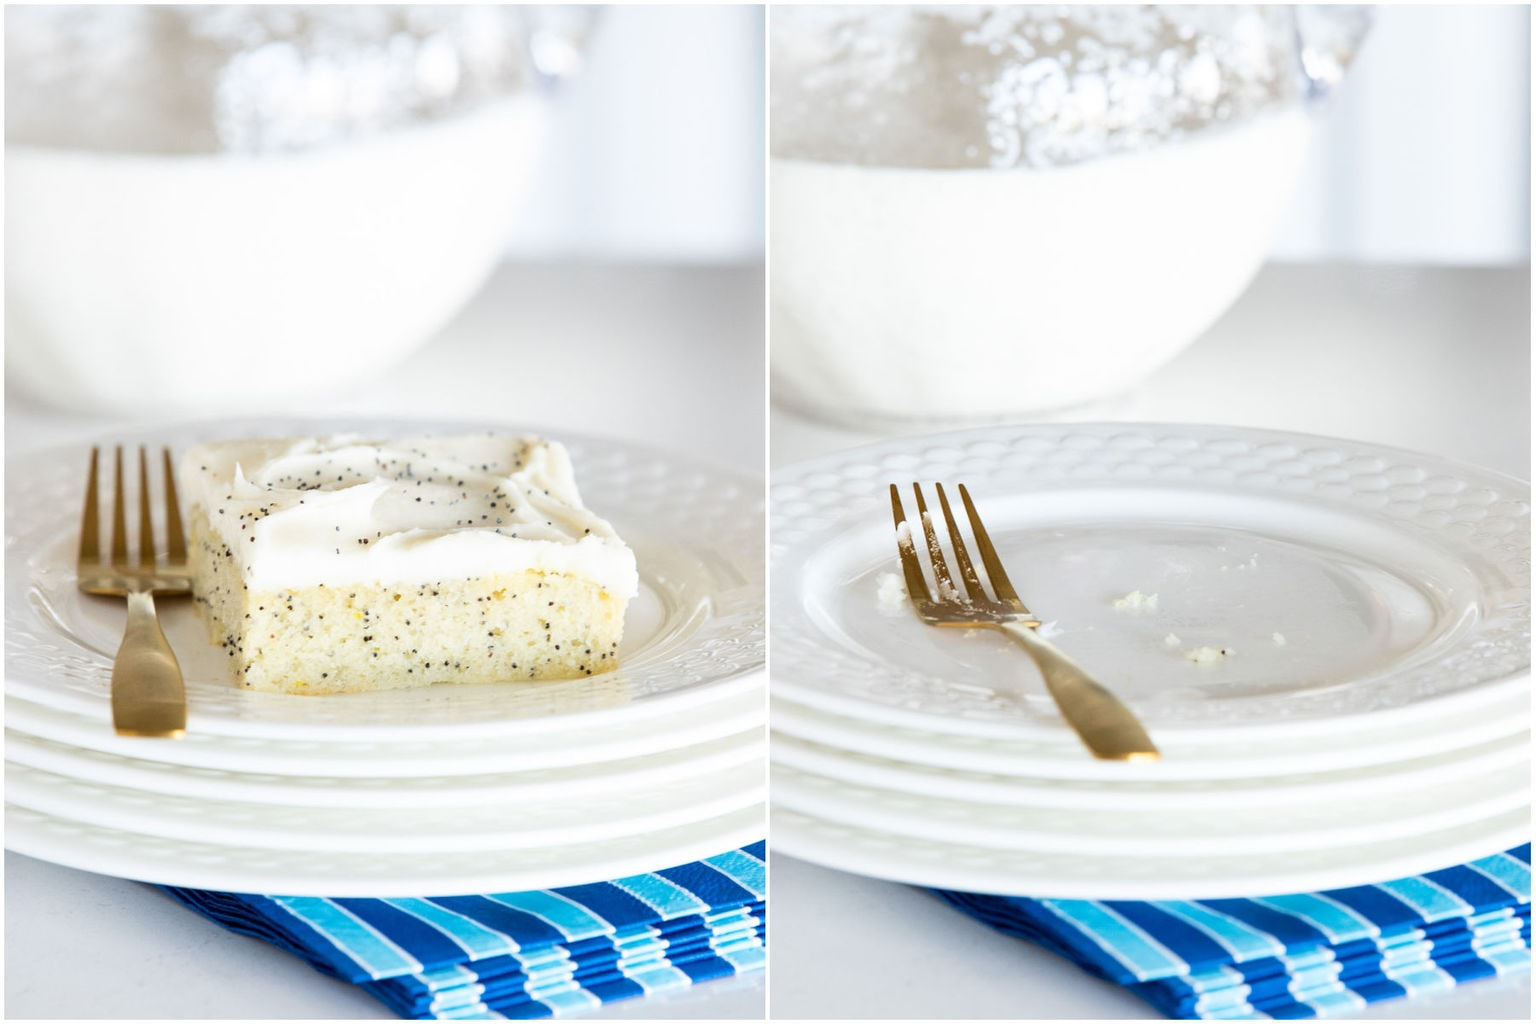 Horizontal 2-photo collage of Ridiculously Easy Lemon Poppy Seed Sheet Cake before and after it was eaten.